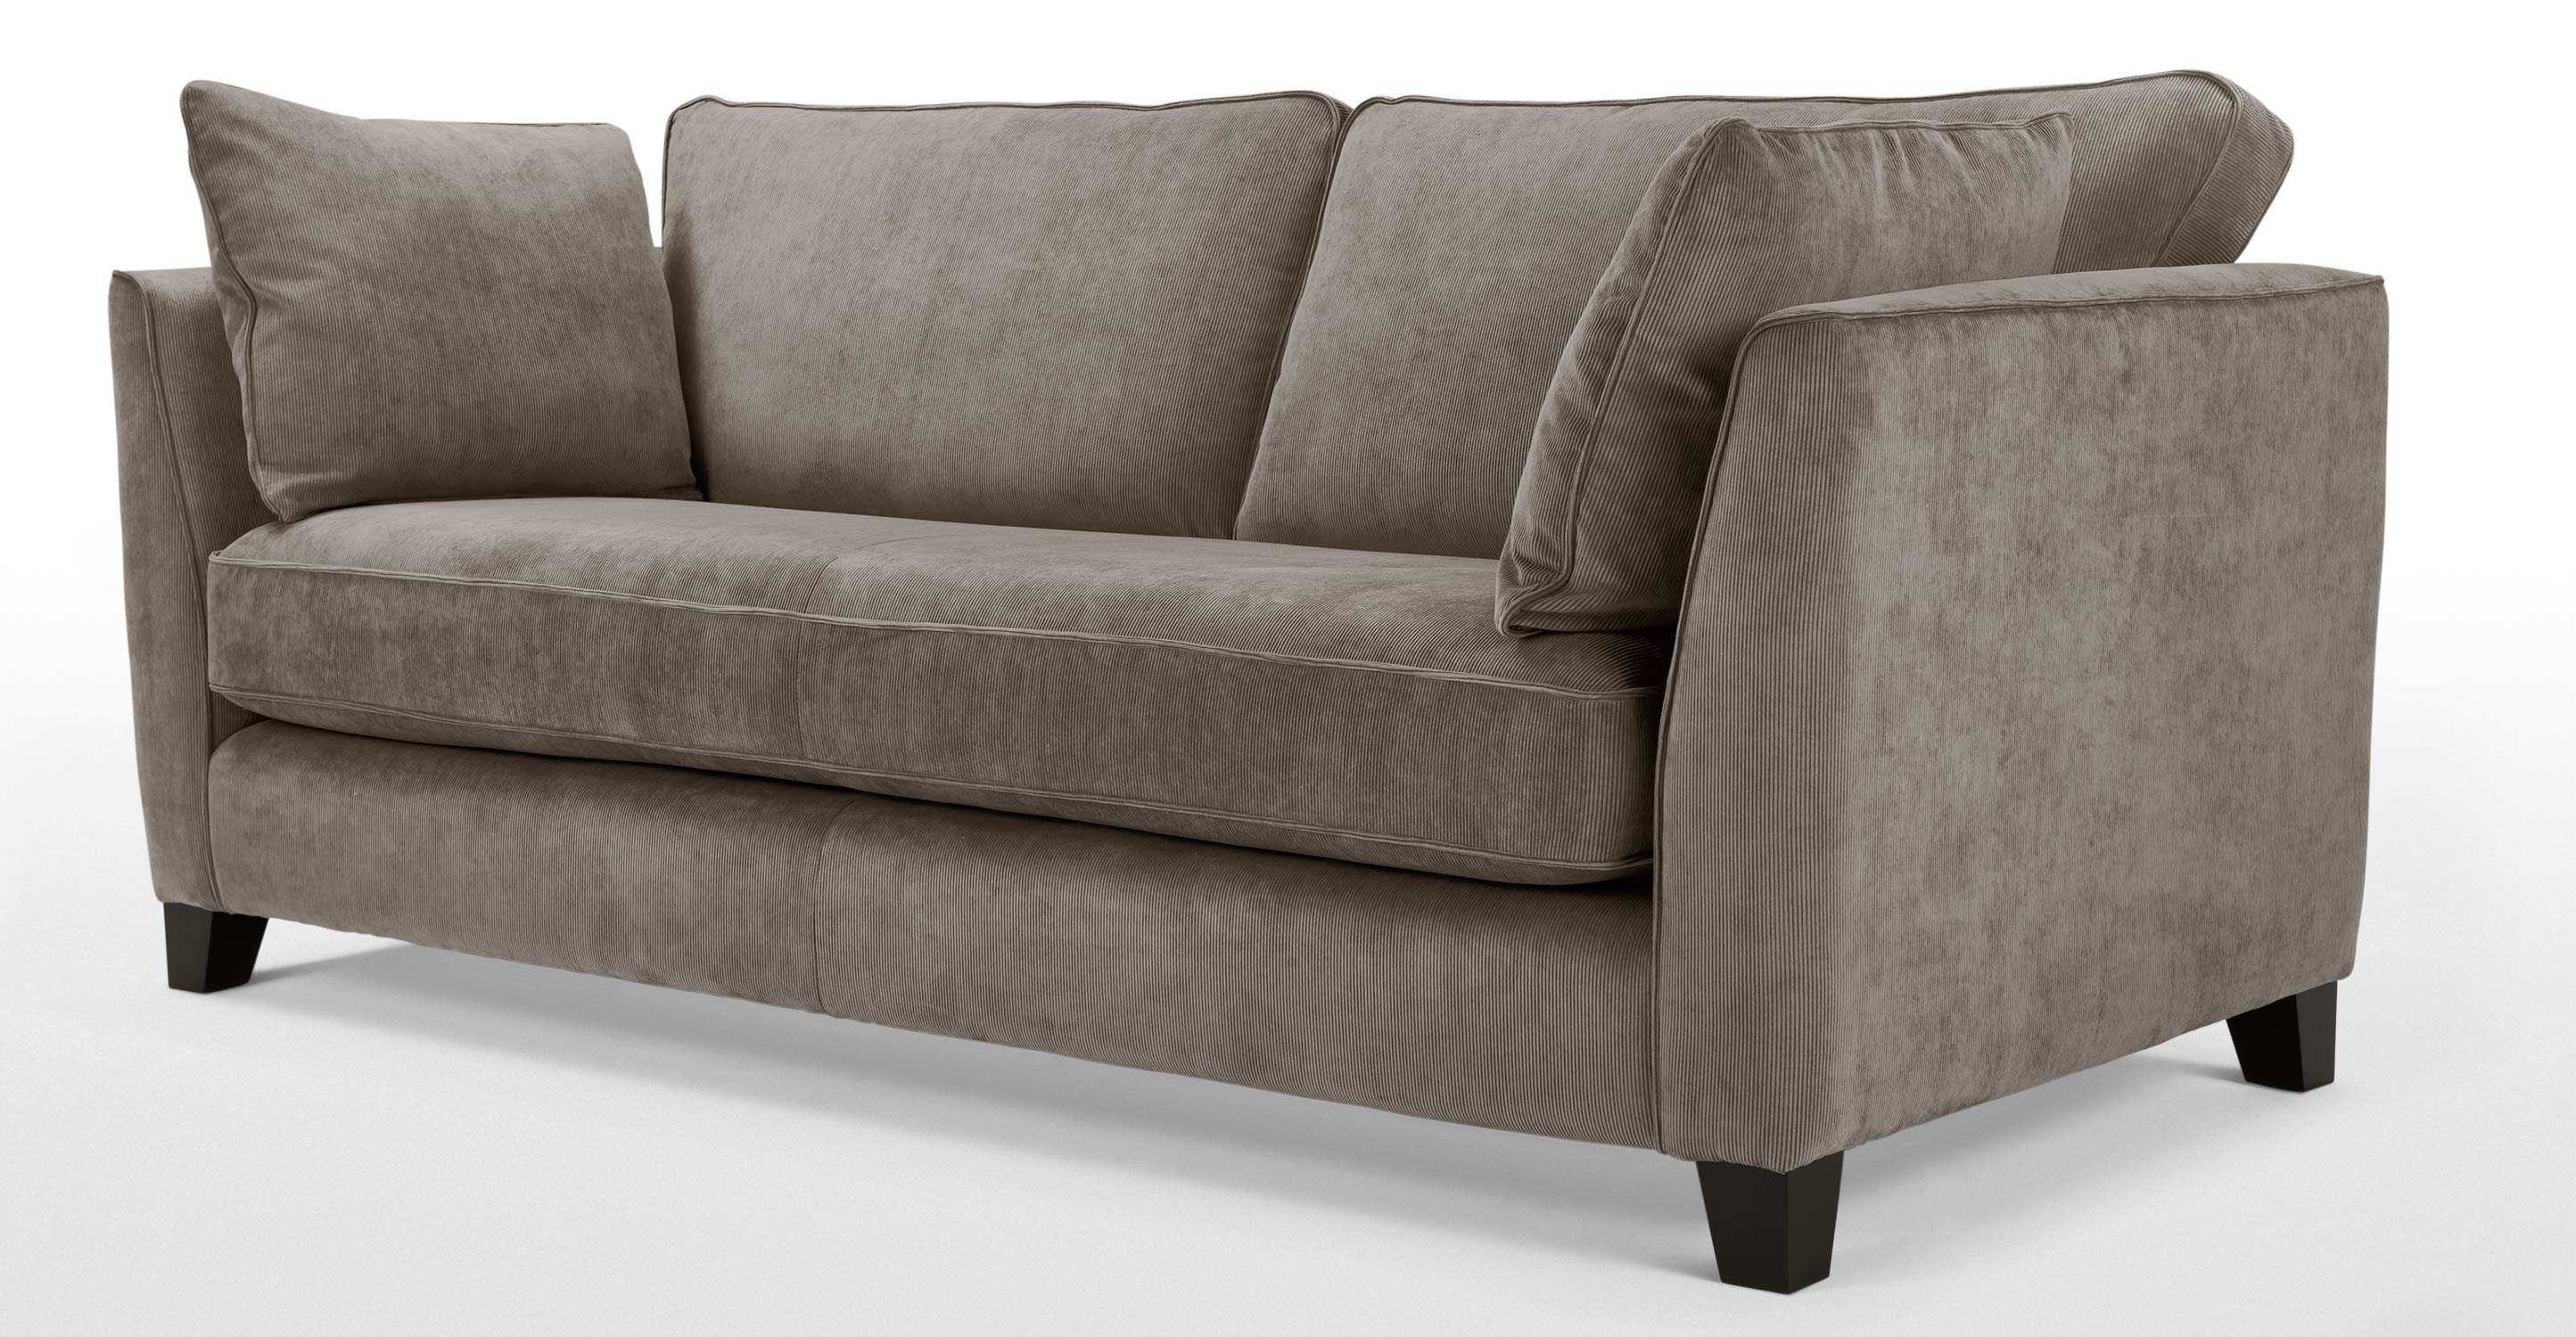 wolseley 3 seater sofa mid grey corduroy. Black Bedroom Furniture Sets. Home Design Ideas